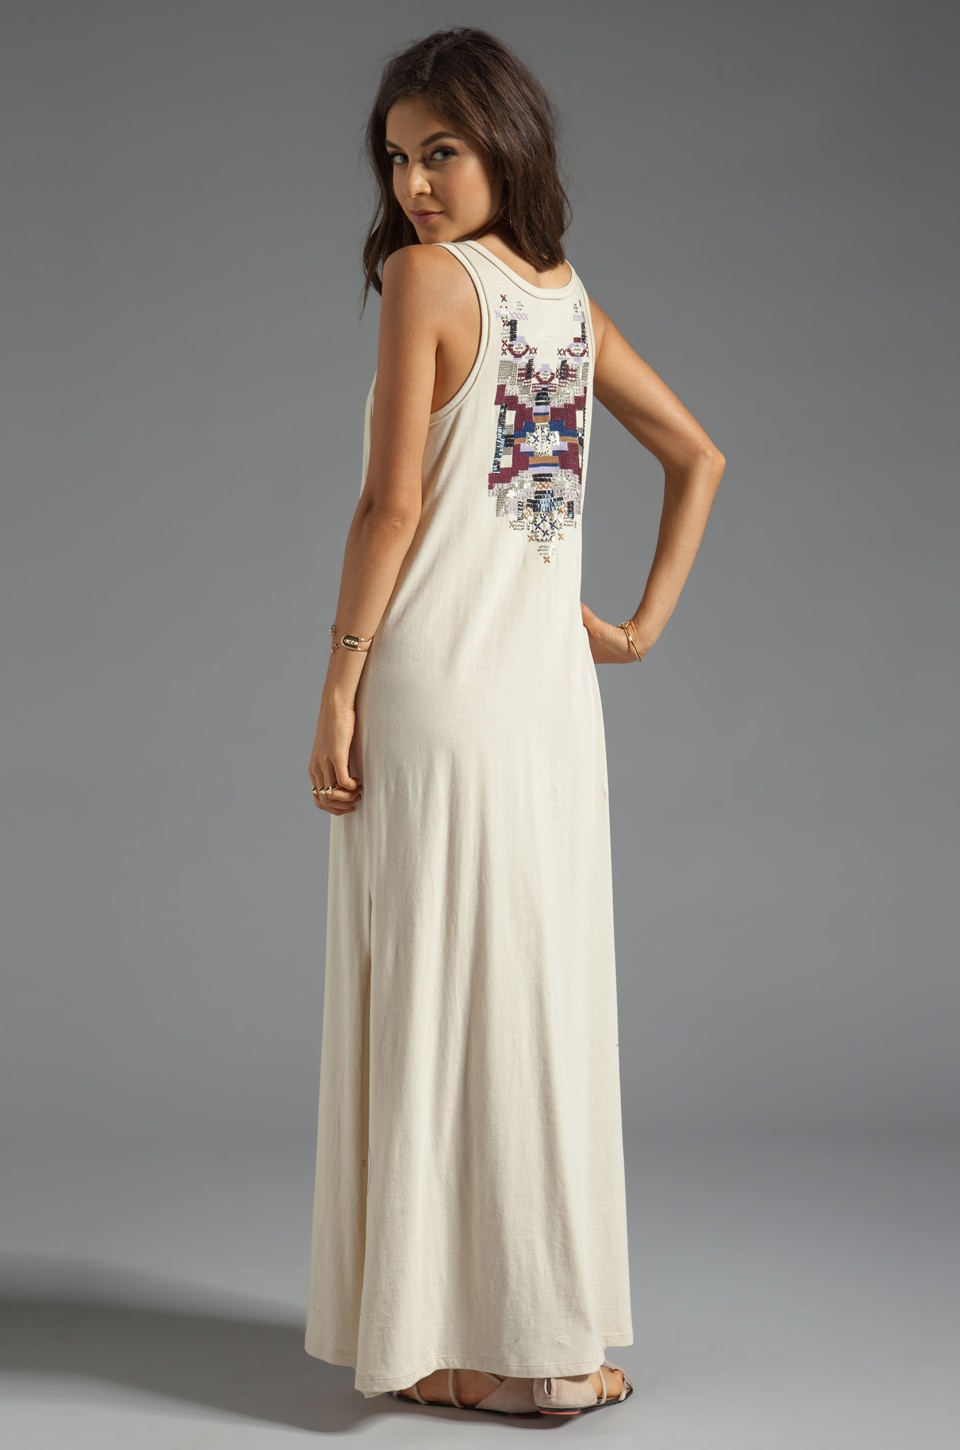 Chaser Embellished Maxi Dress in Muslin